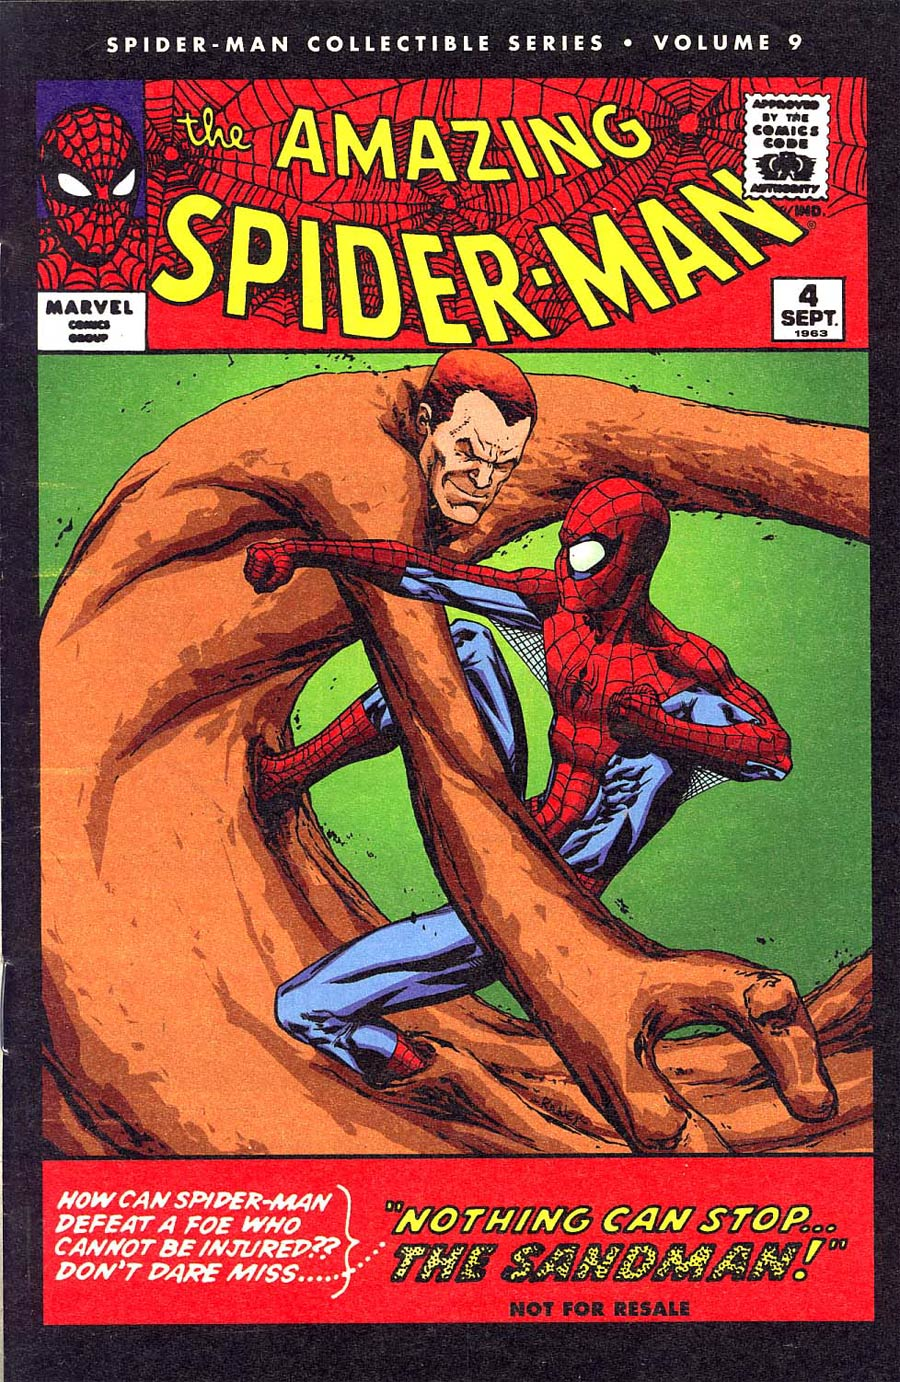 Spider-Man Collectible Series #9